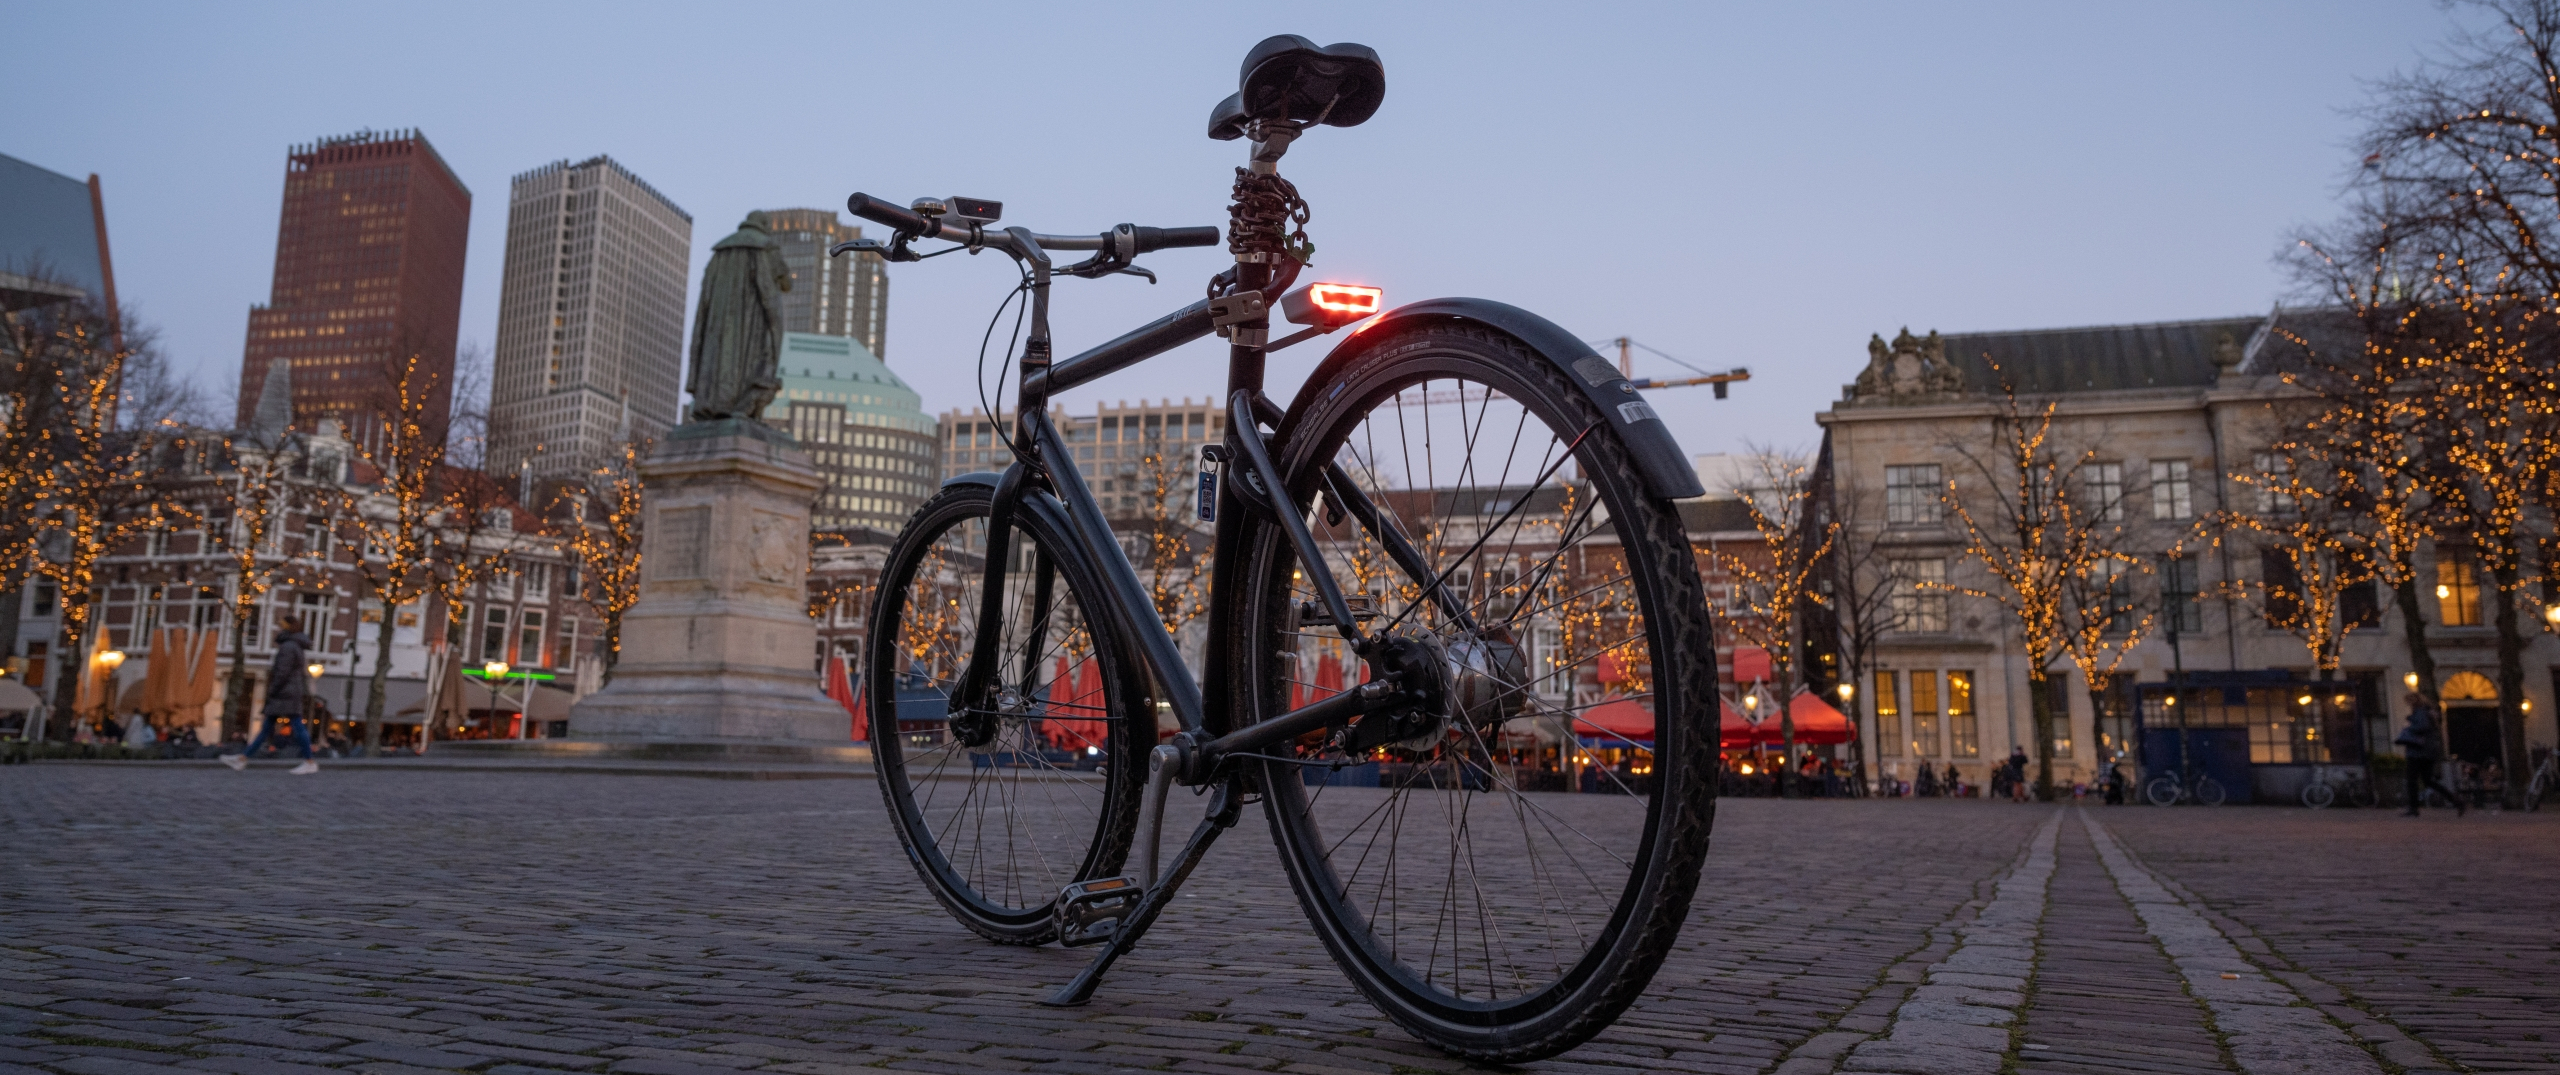 Rydon rear bicyle lights in The Hague